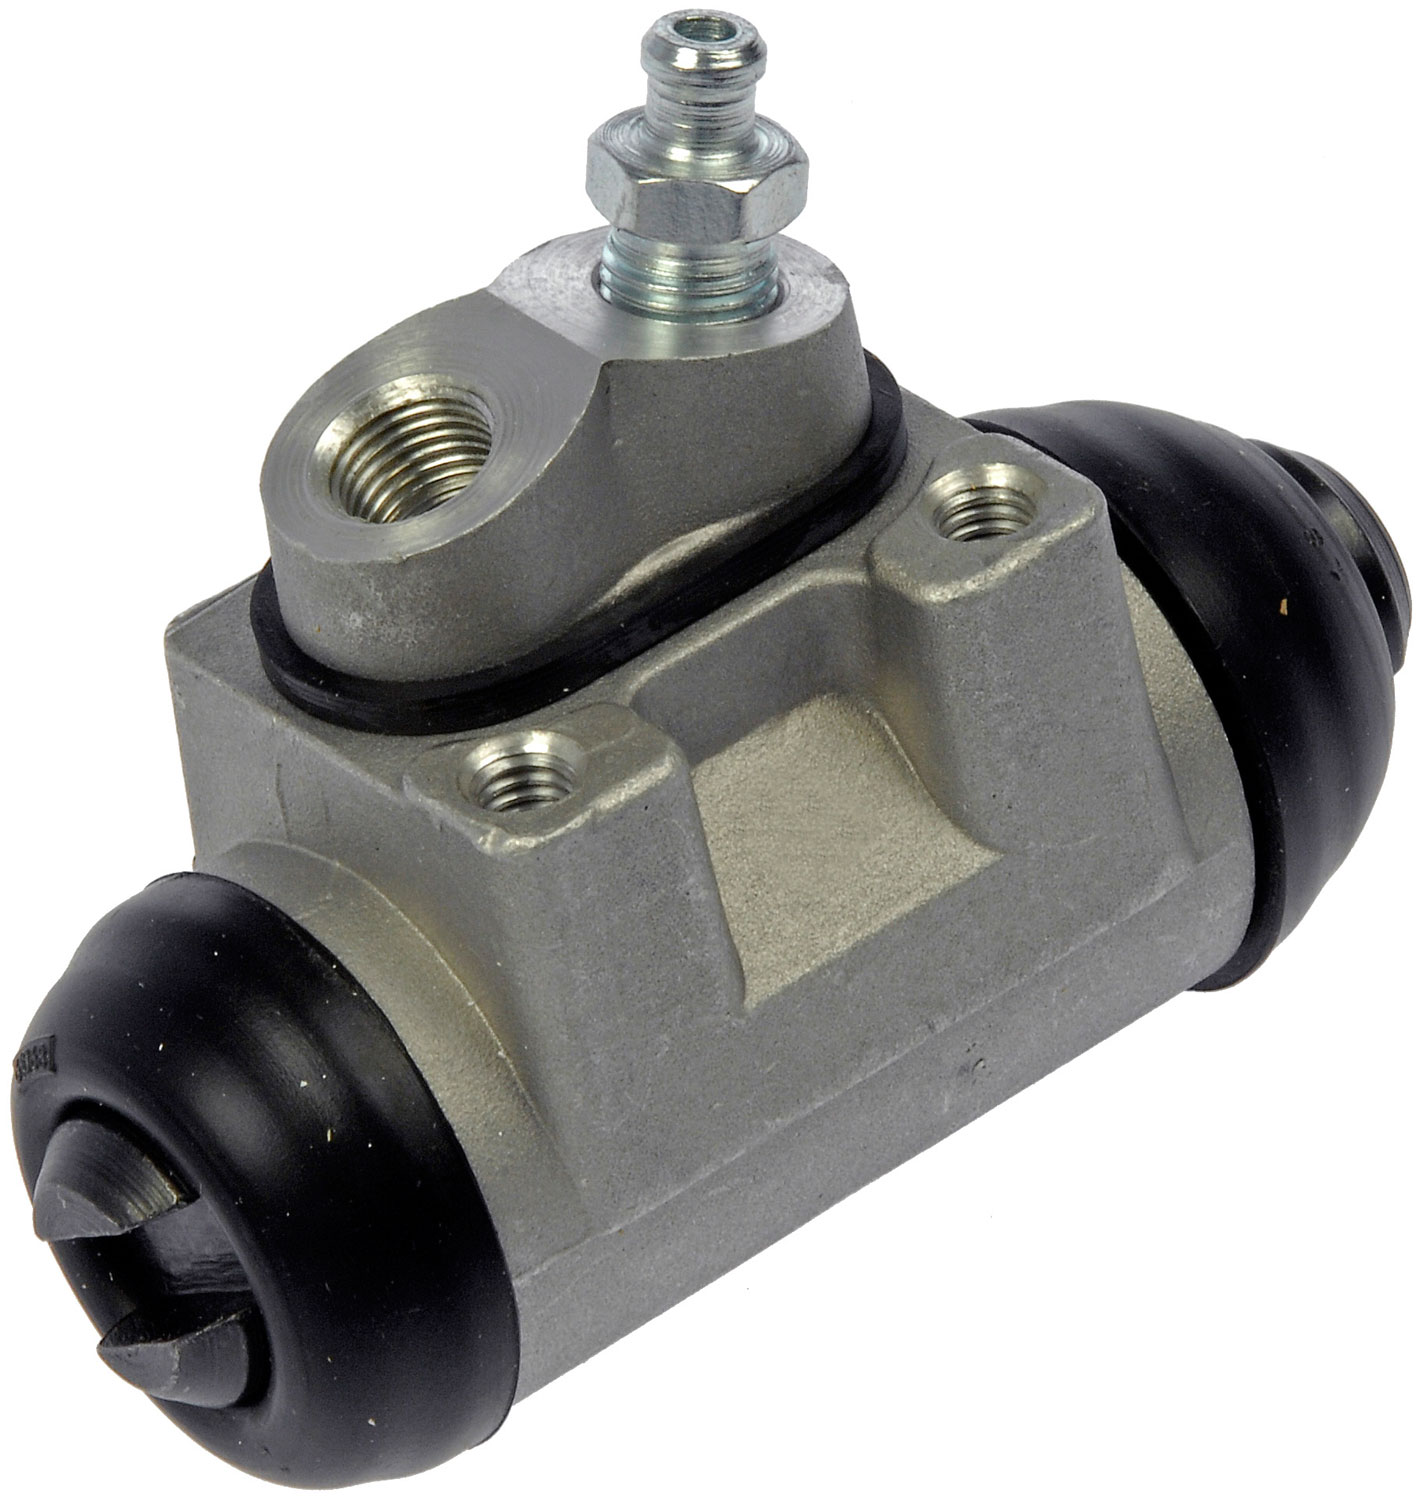 DRUM BRAKE WHEEL CYLINDER - Dorman# W619013